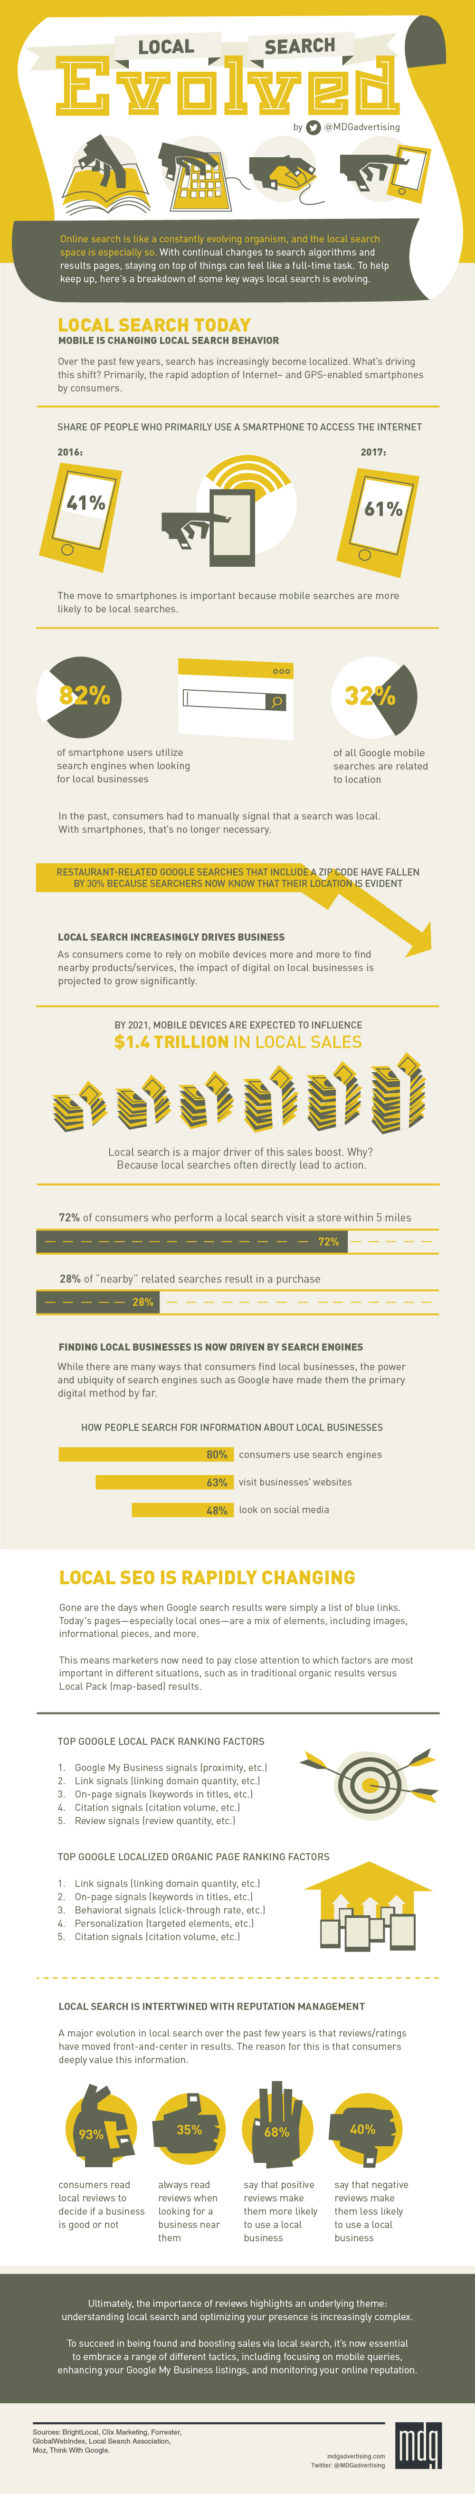 Local Search Evolved [Infographic]